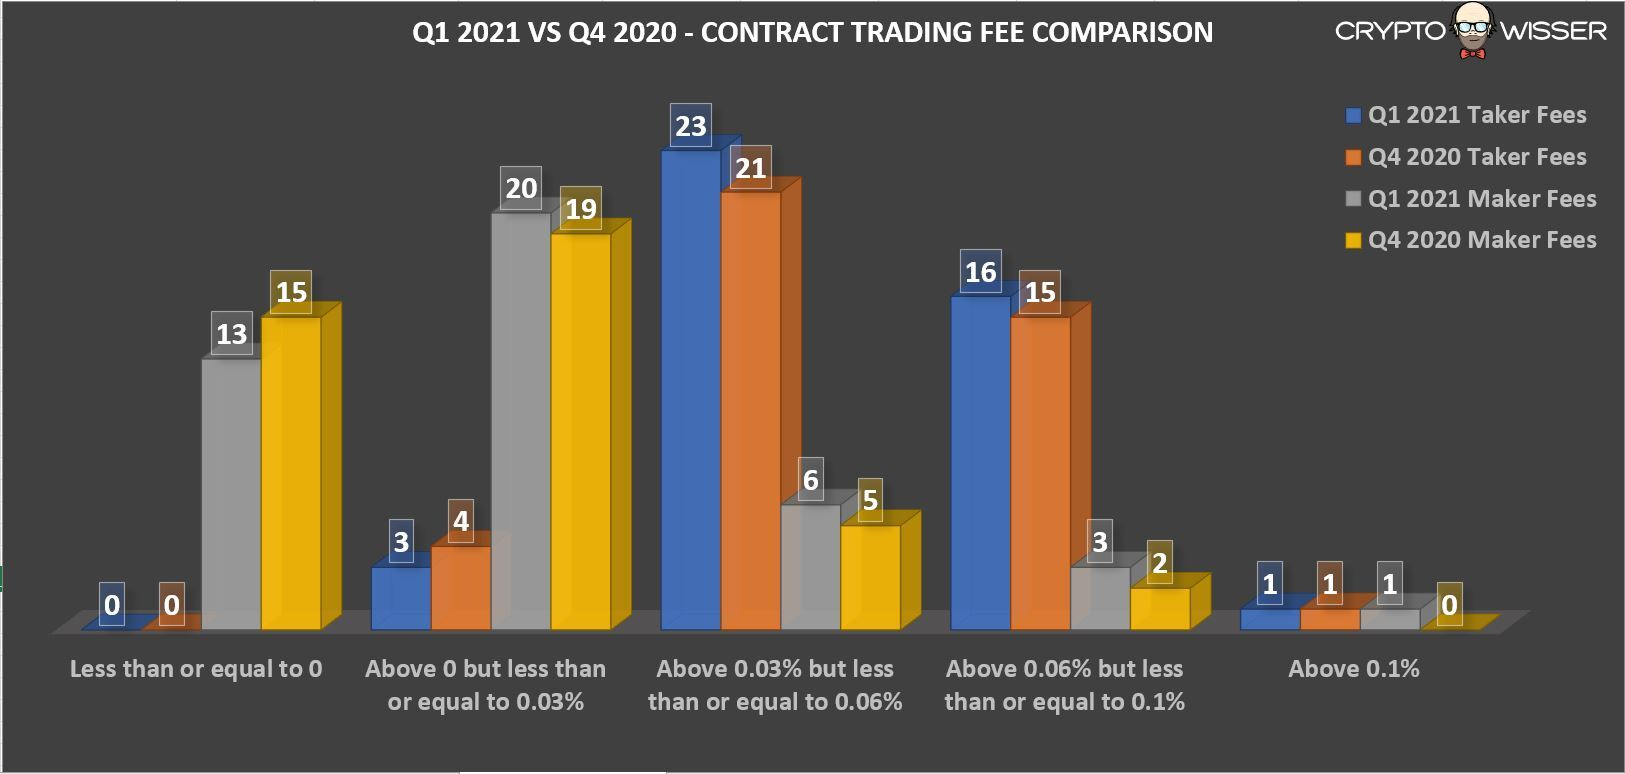 Q1 2021 Contract Trading Fee Comparison